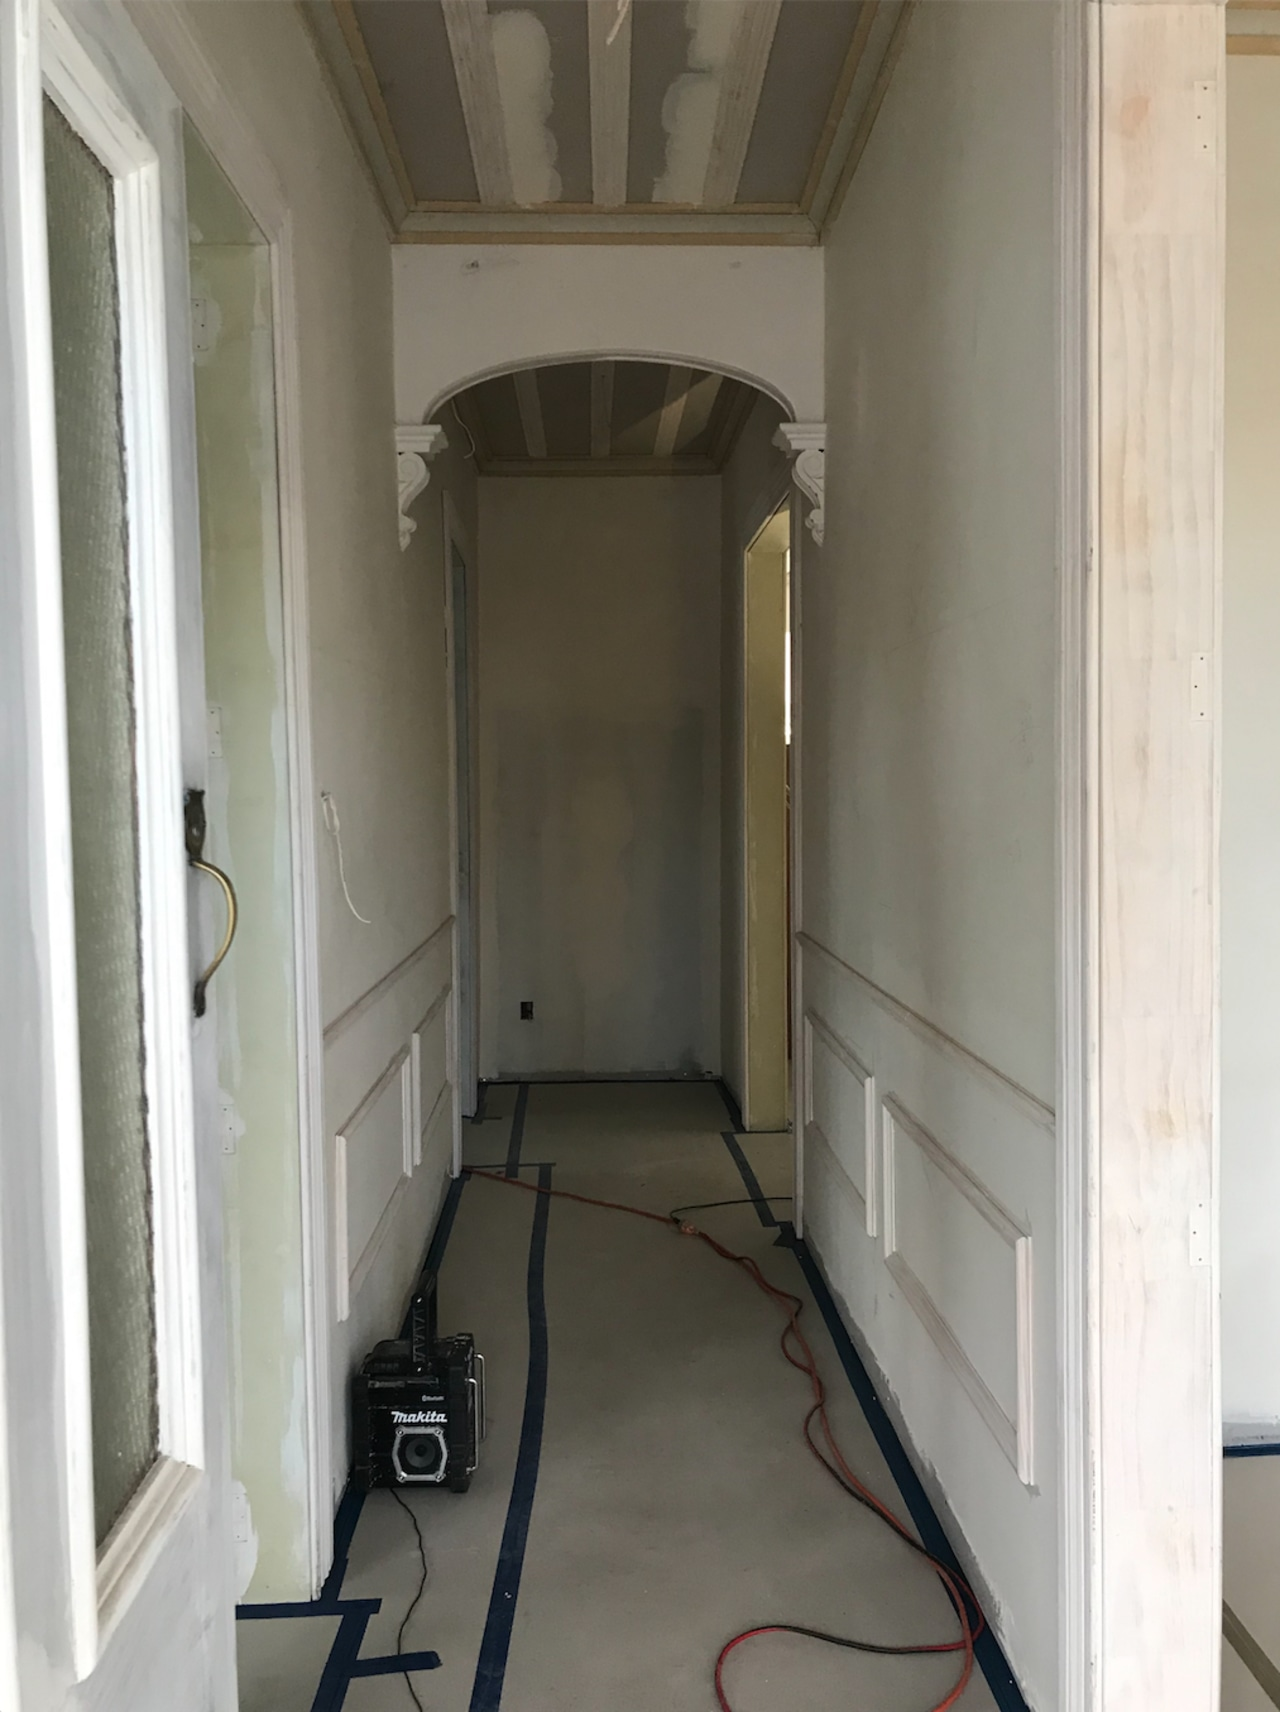 The hallway panelling has now been completed. architecture, building, ceiling, floor, hall, house, plaster, property, room, wall, gray